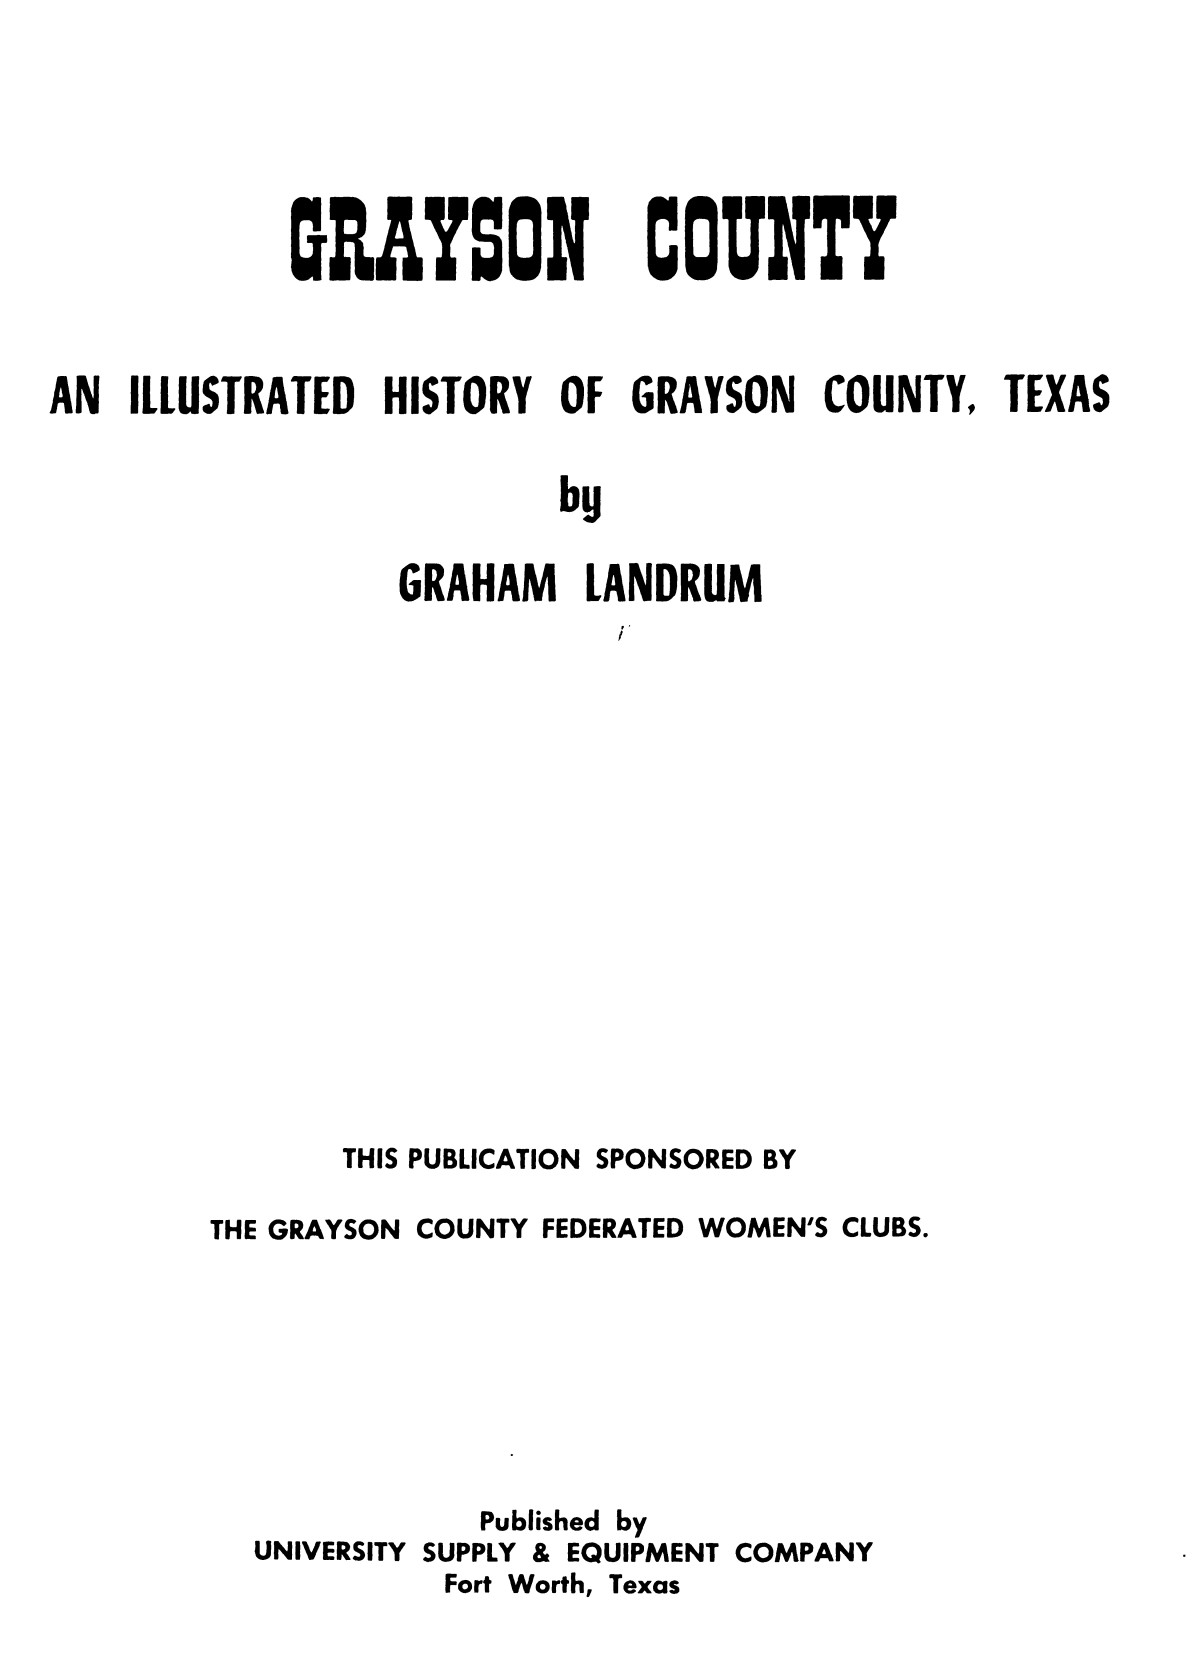 Grayson County; an illustrated history of Grayson County, Texas.                                                                                                      TP